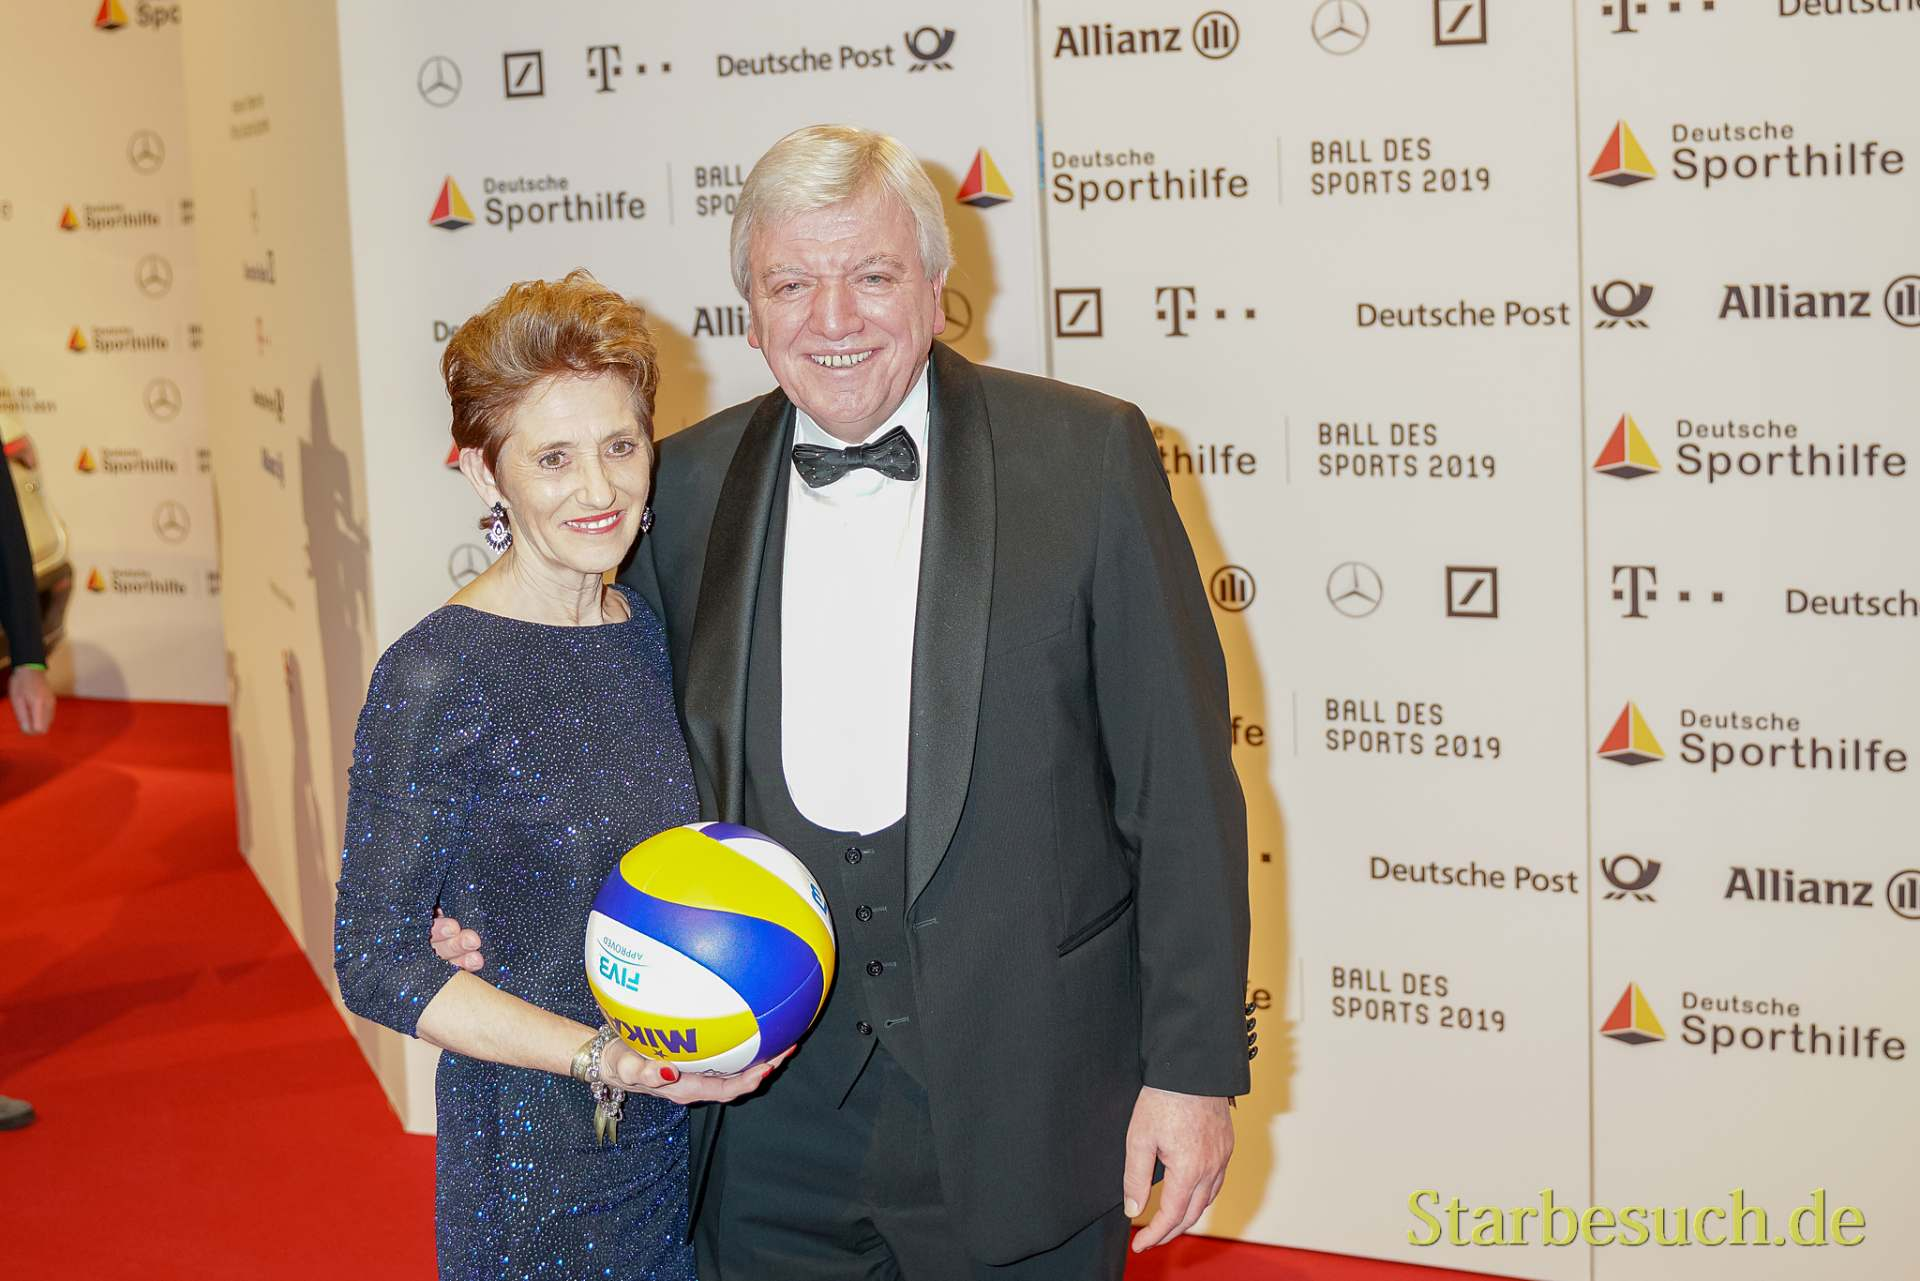 WIESBADEN, Germany - February 2nd, 2019: Volker Bouffier (*1951, German politician) at Ball des Sports 2019